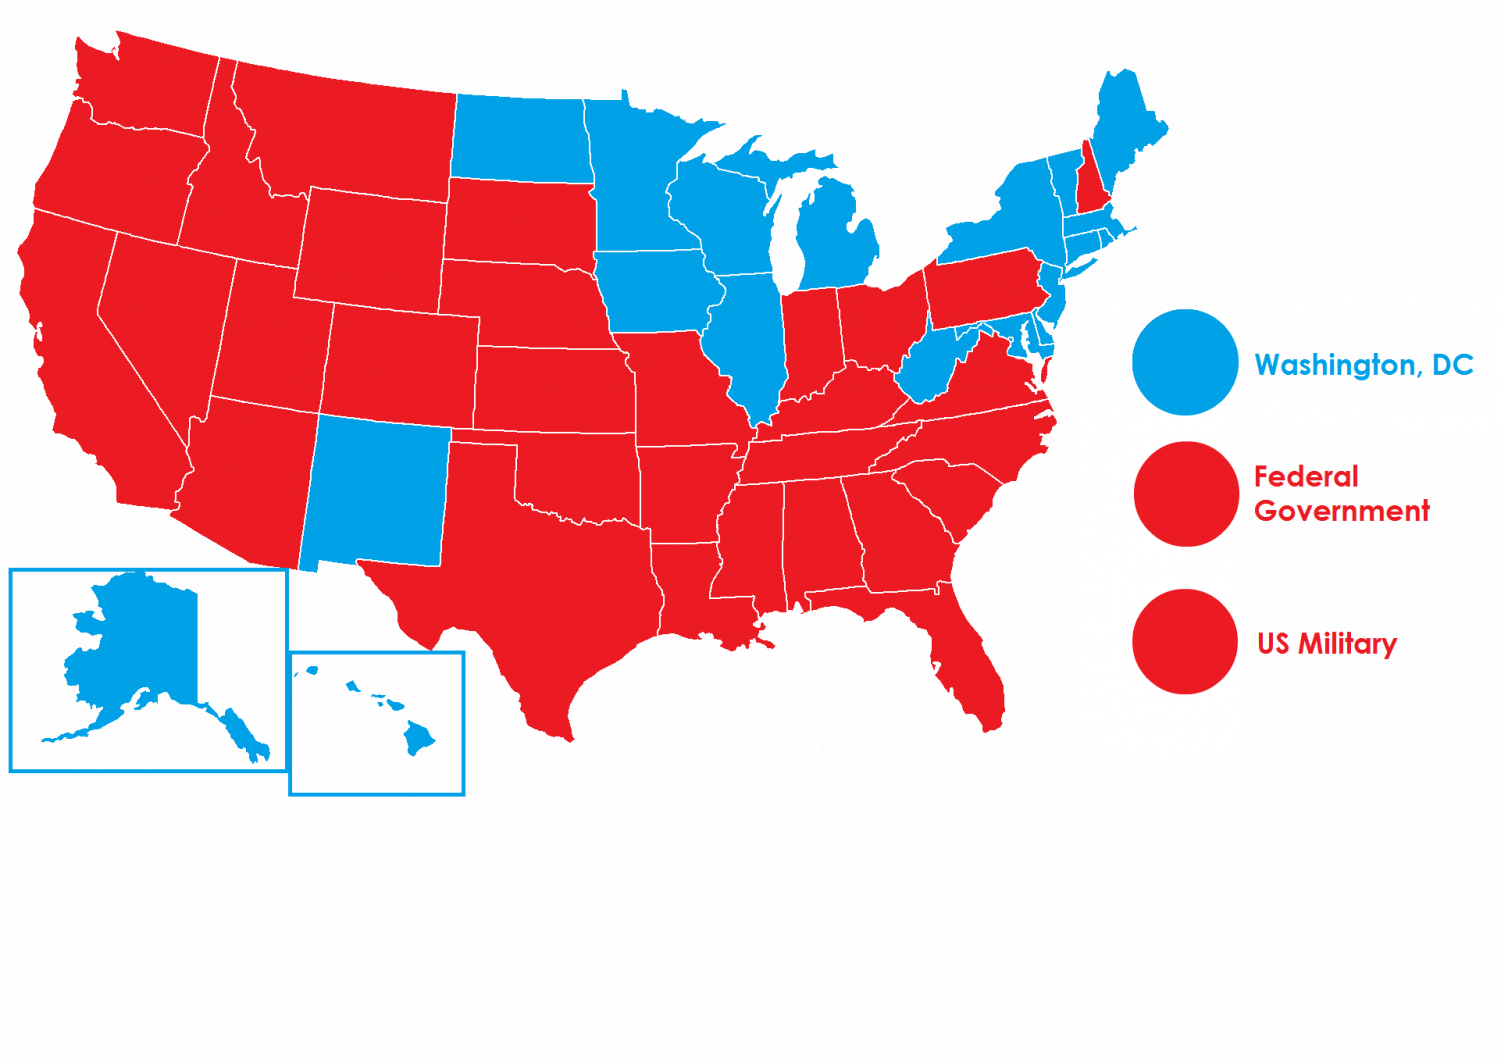 States which have outlawed capital punishment in blue, all rest in red